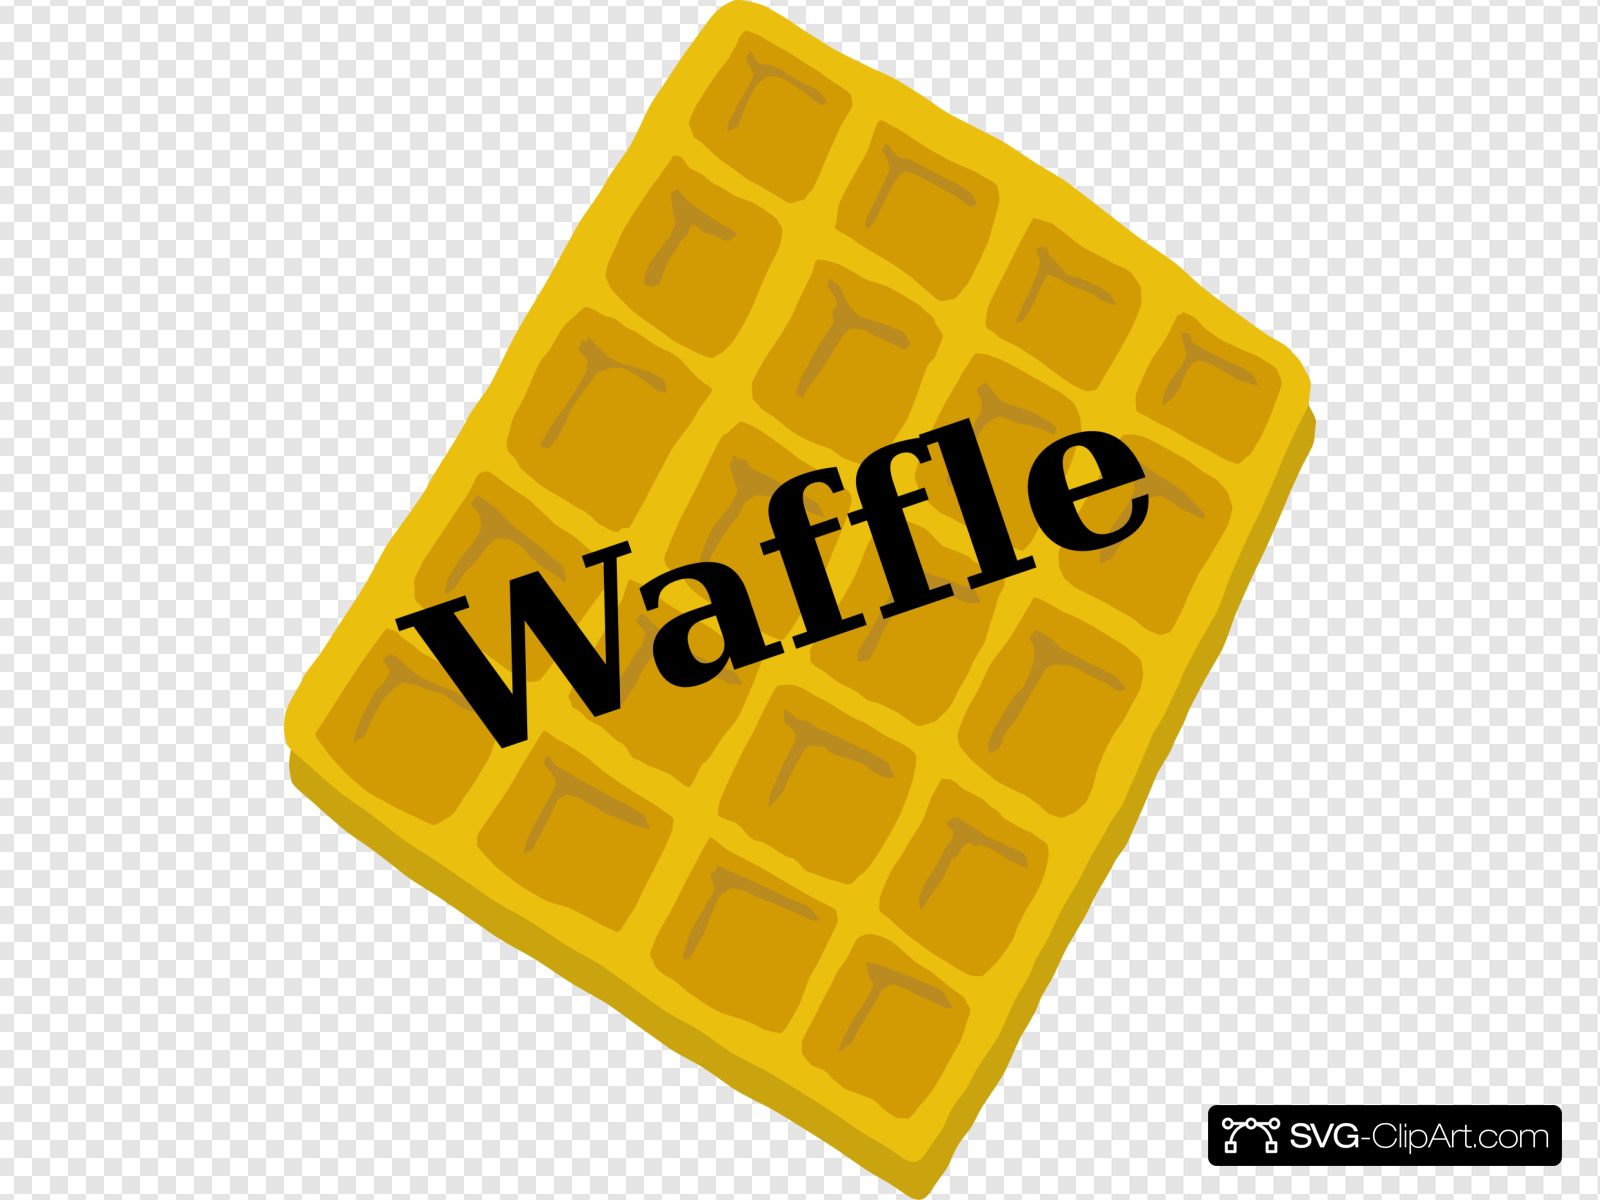 Waffle clipart yellow. Clip art icon and